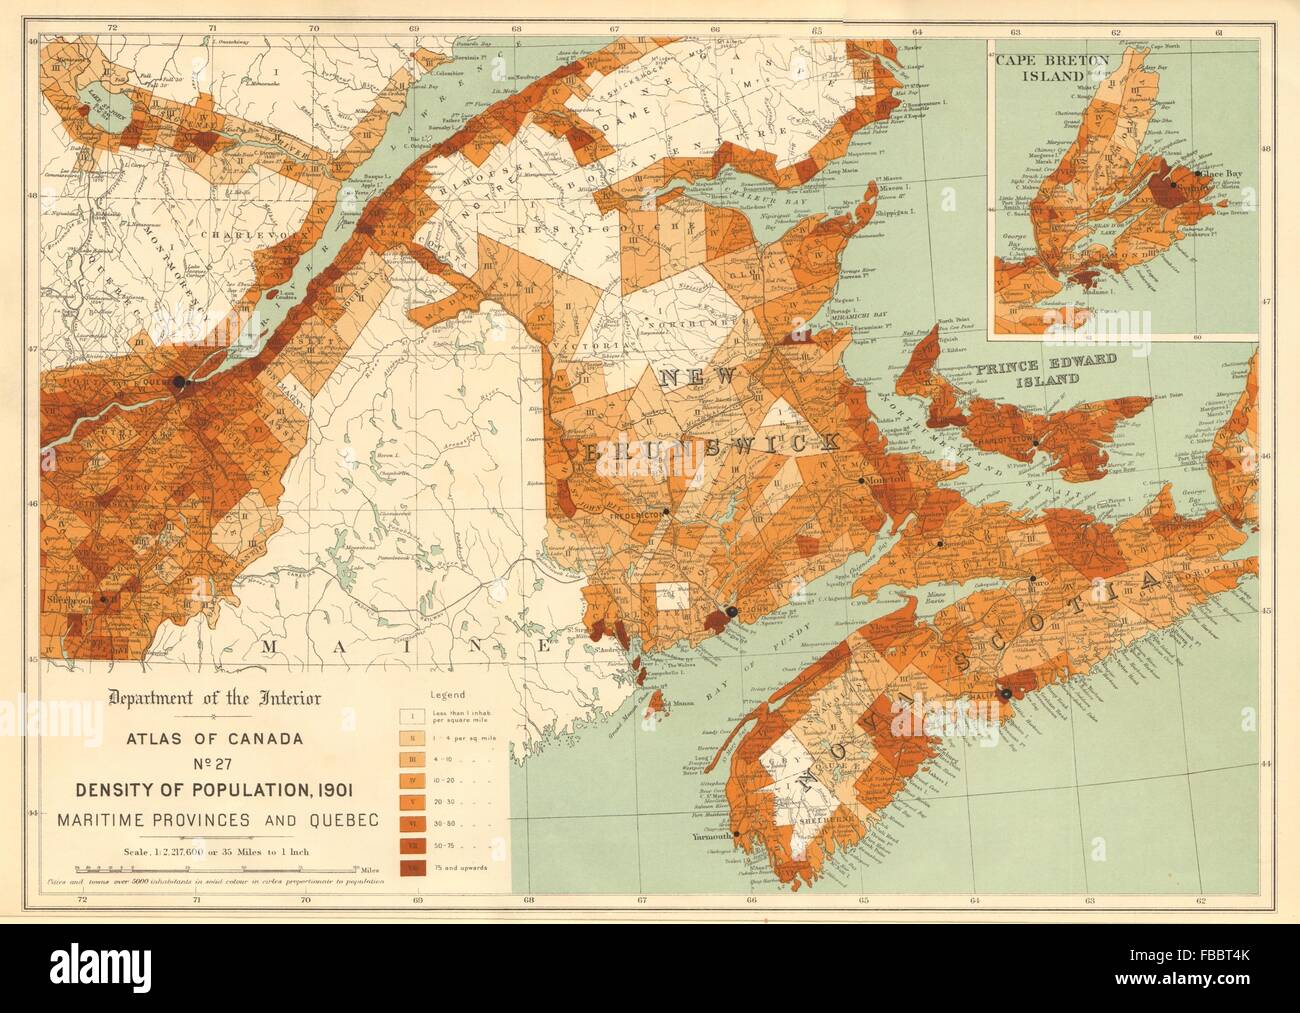 Map Of Canada Population Density.Canada Population Density 1901 Maritime Provinces And Quebec White